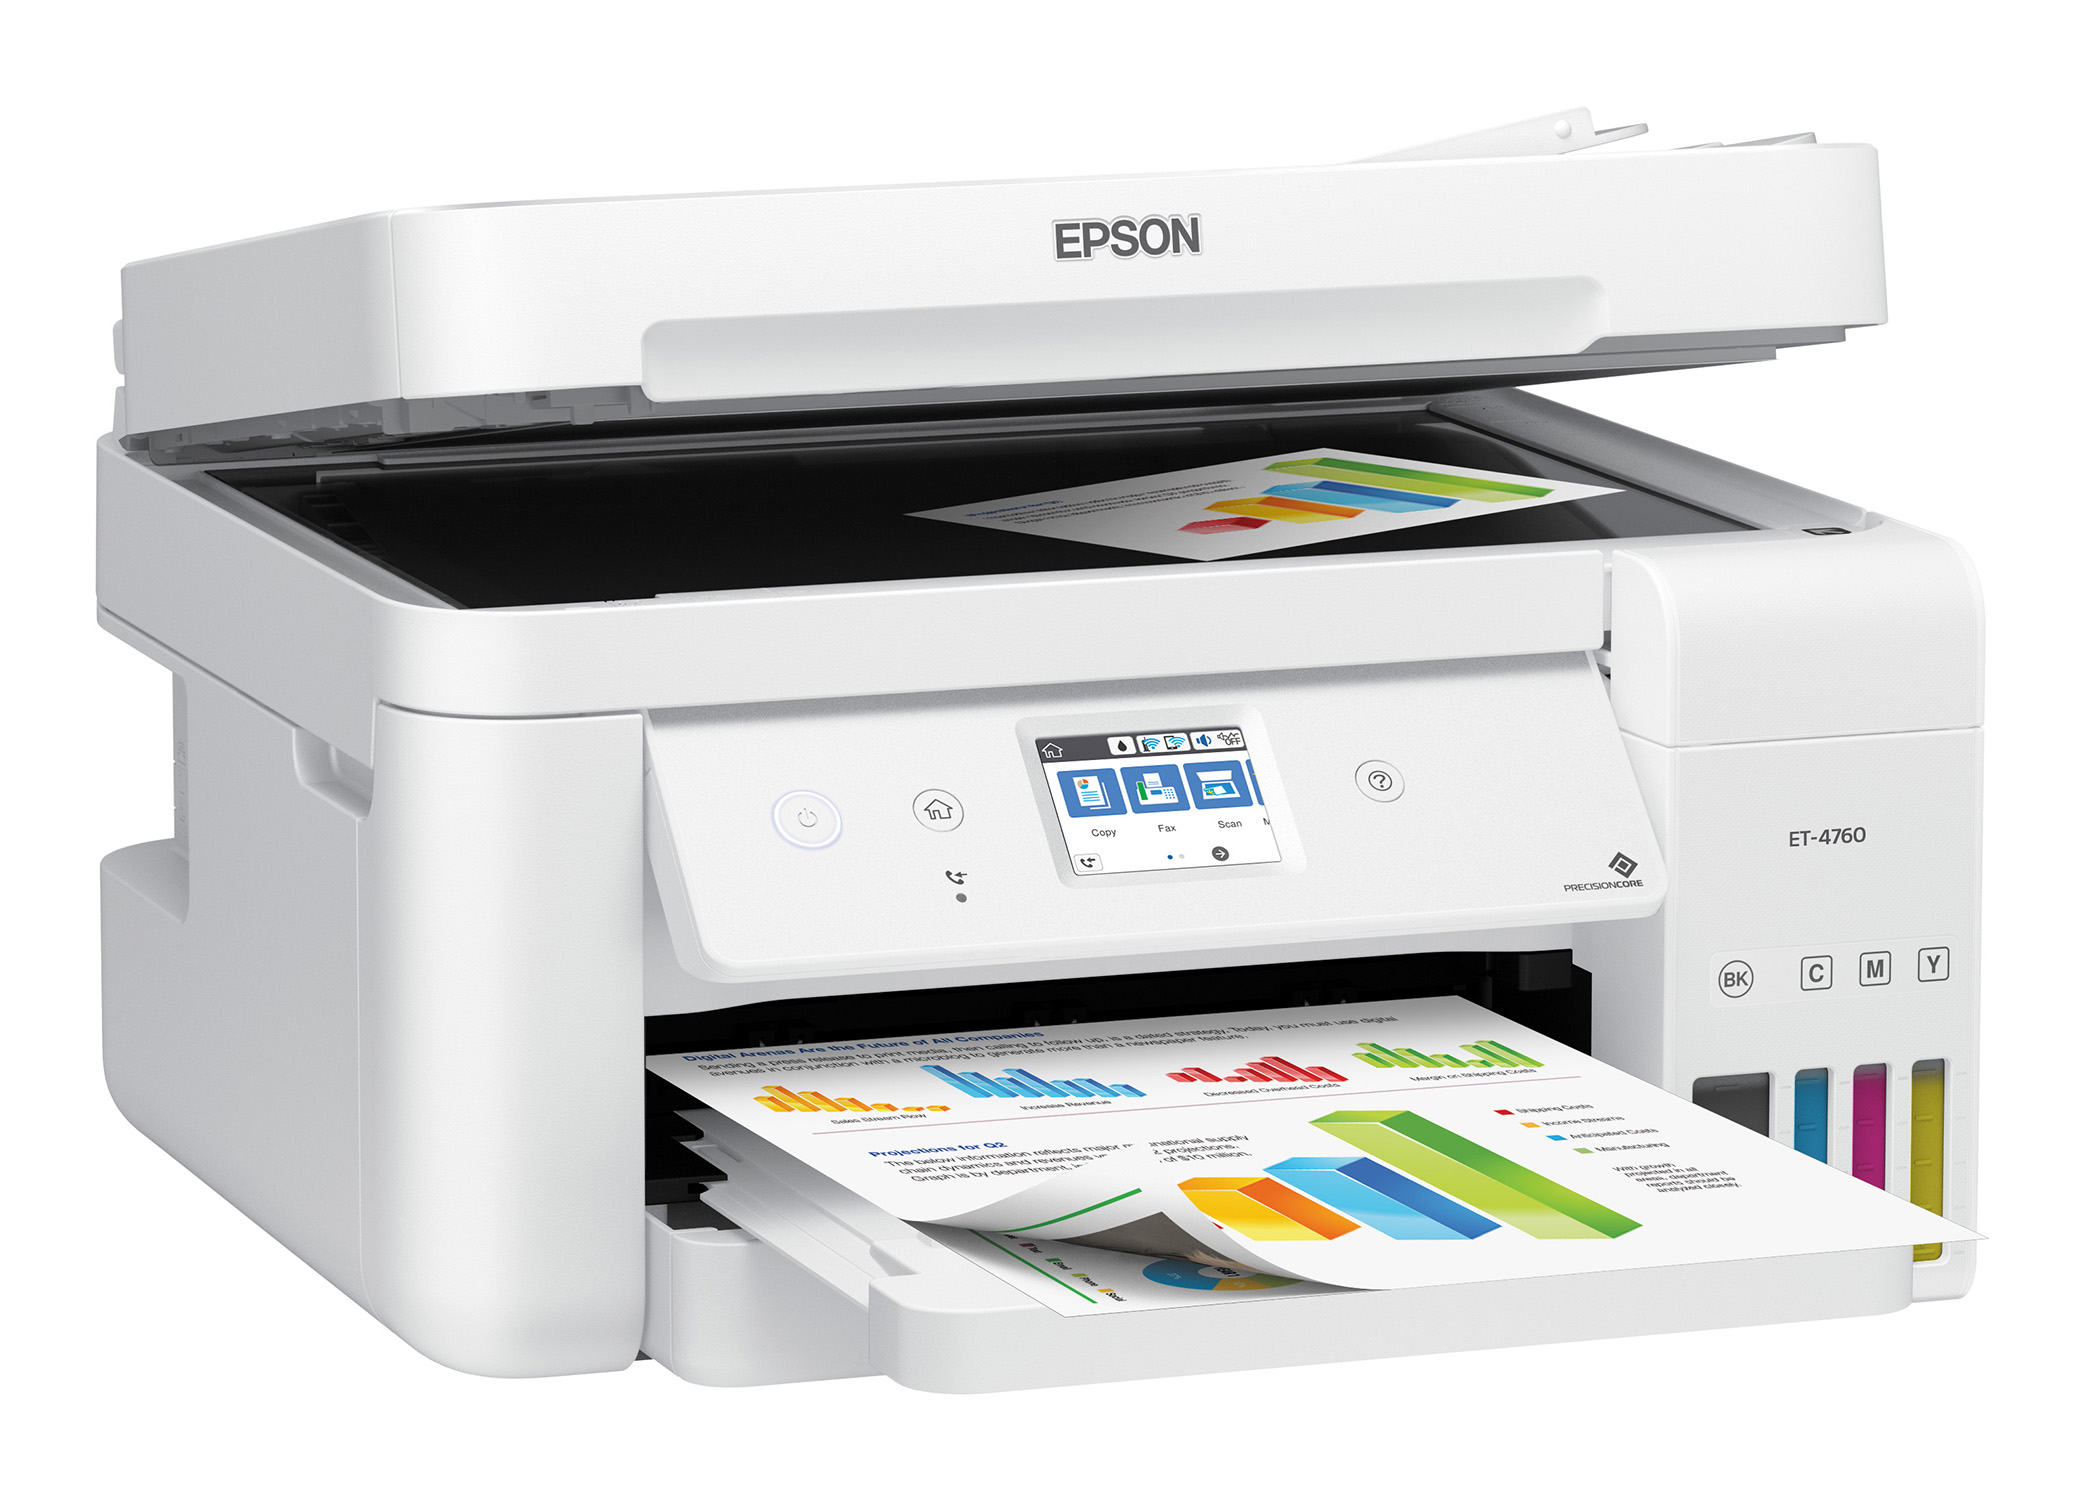 Whether you're turning your Airstream into a traveling office or heading to your vacation cabin for an extended stay, take the Epson Supertank ET-4760 printer with you.